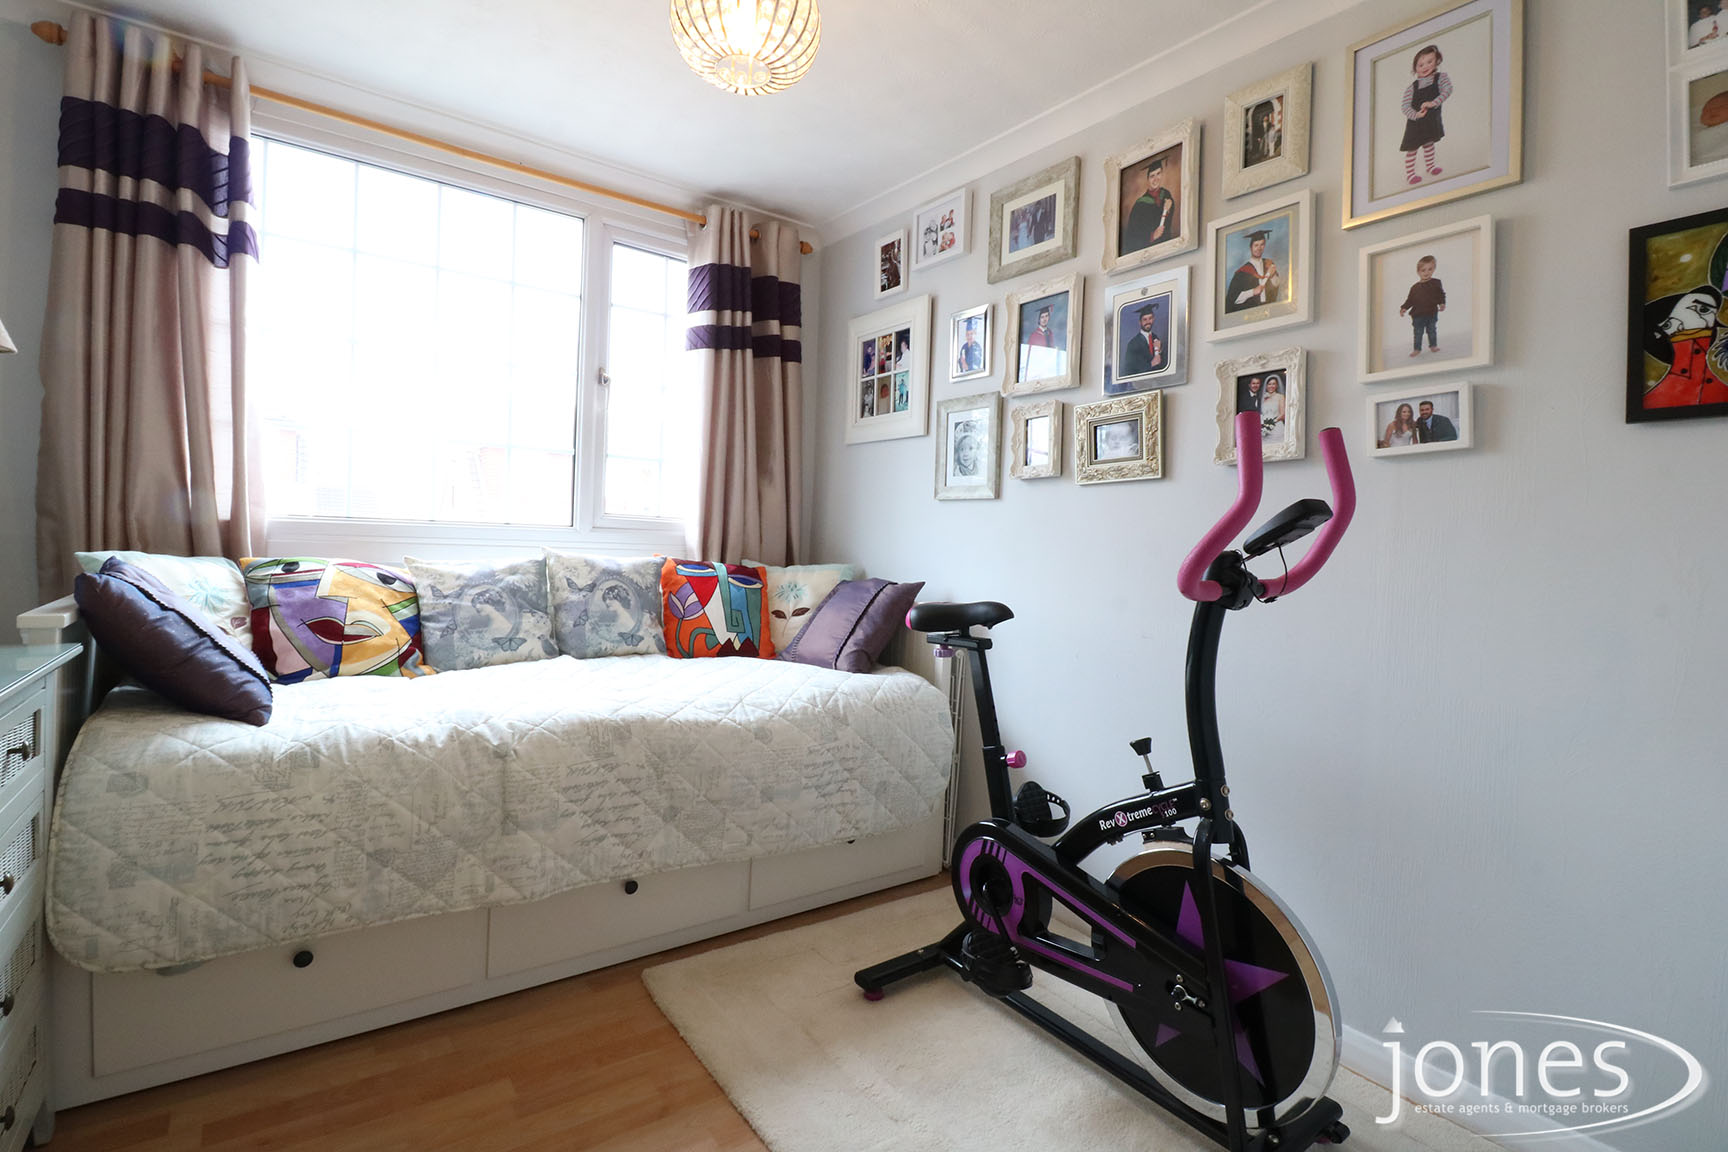 Home for Sale Let - Photo 10 Surbiton Road, Fairfield, Stockton on Tees, TS19 7SA